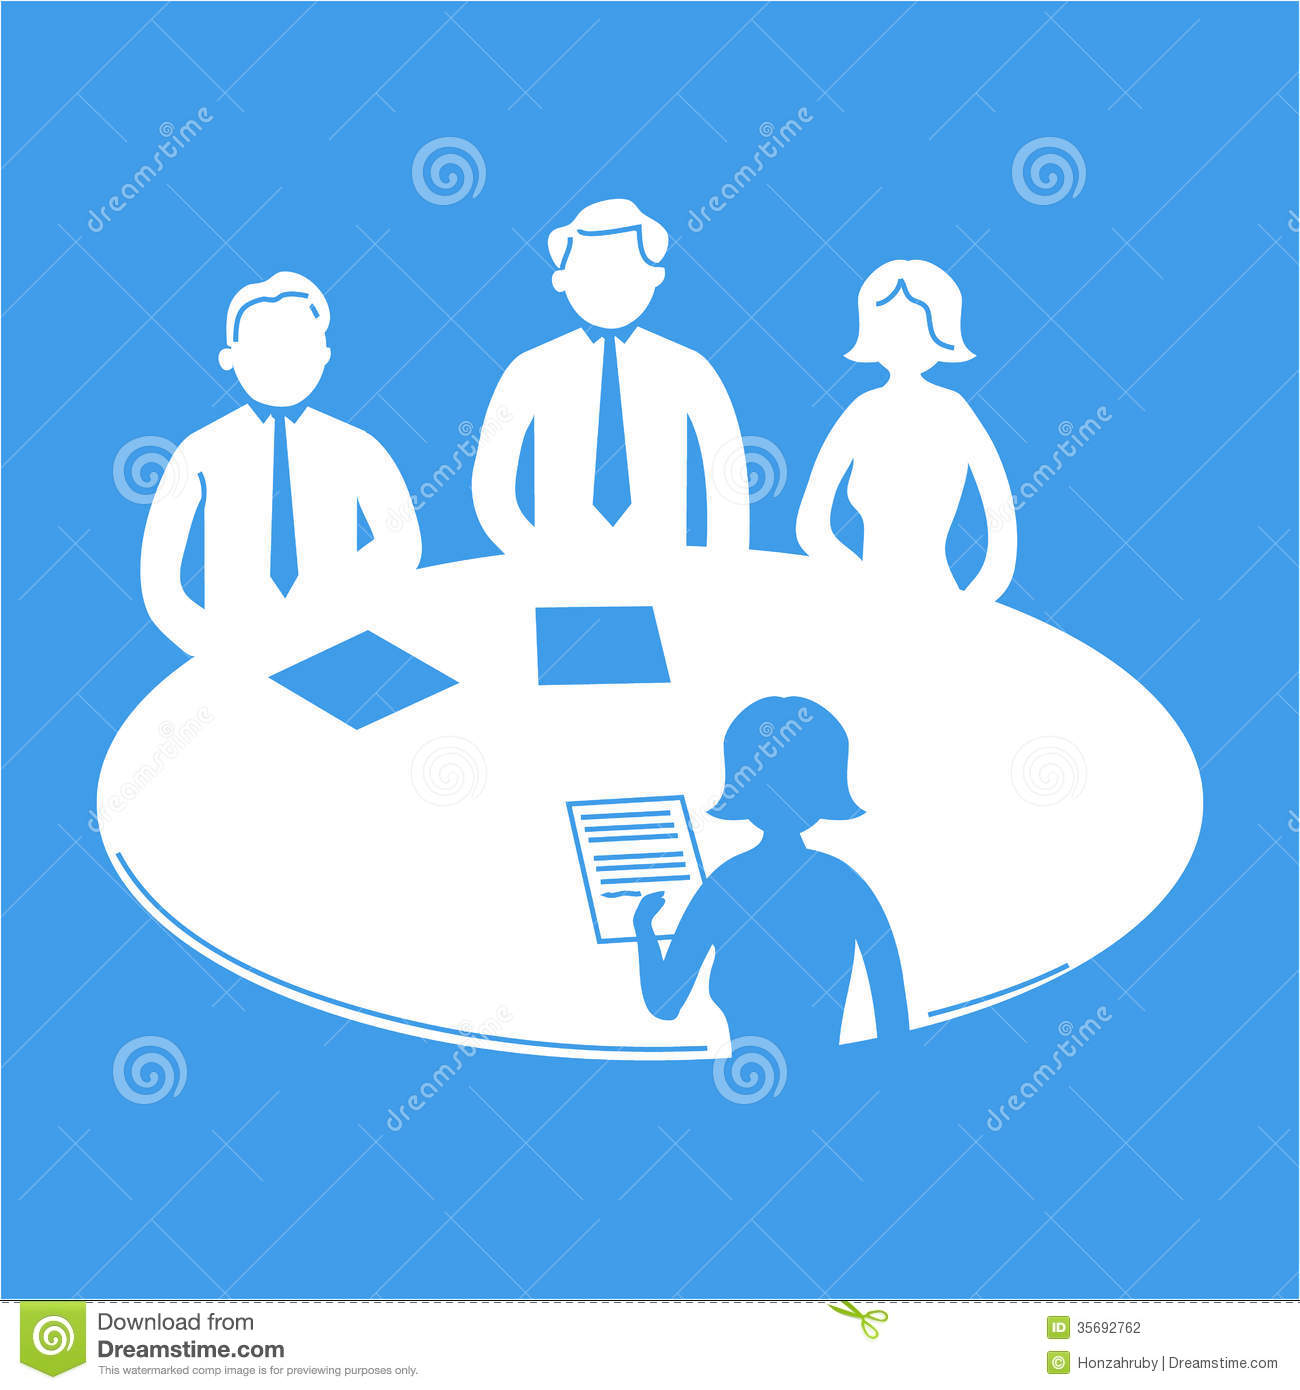 Vector business meeting icon with pictograms of people around table